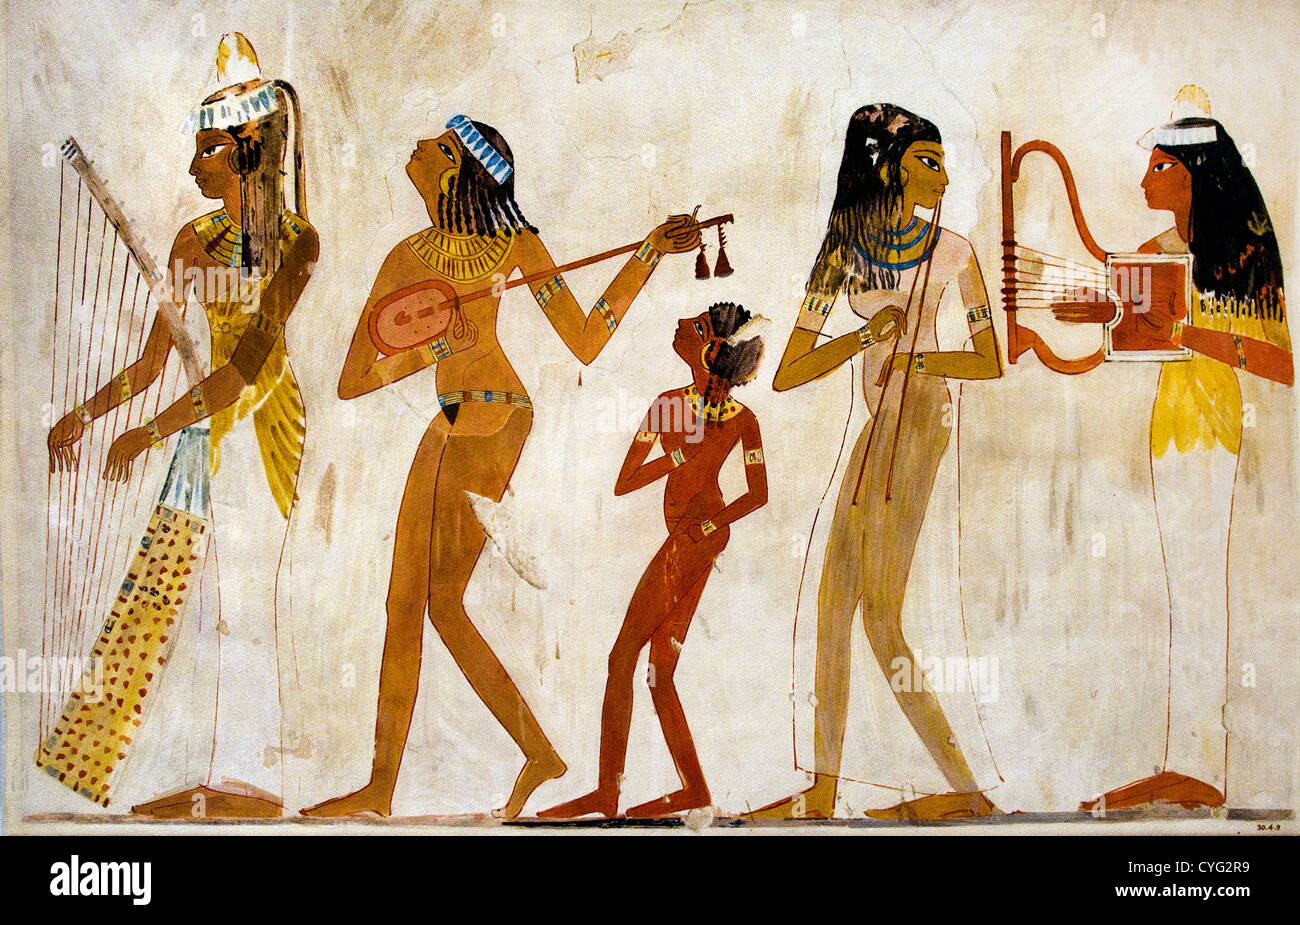 Egyptian Wall  Painting from the New Kingdom 1480 BC - 1070 BC  Music Female Musicians - Stock Image